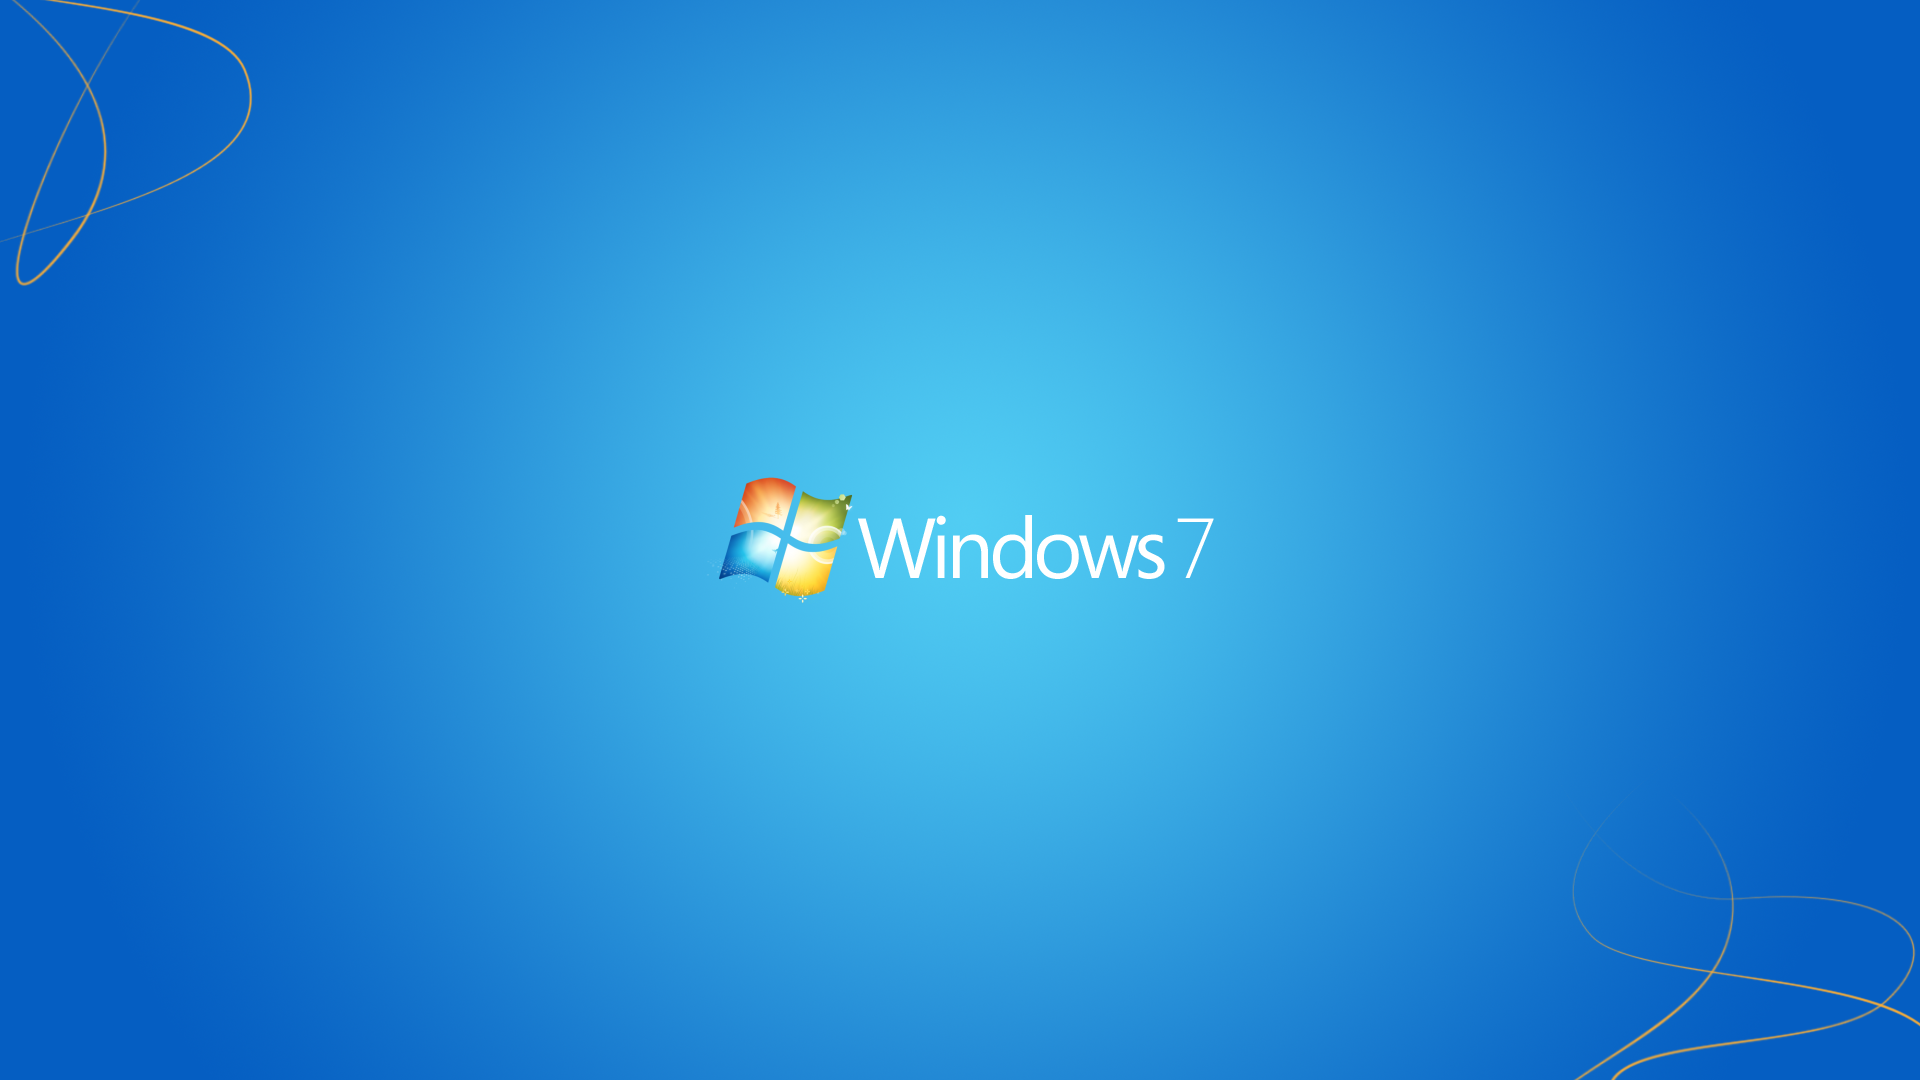 windows 7 default wallpaper 1920x1080 images